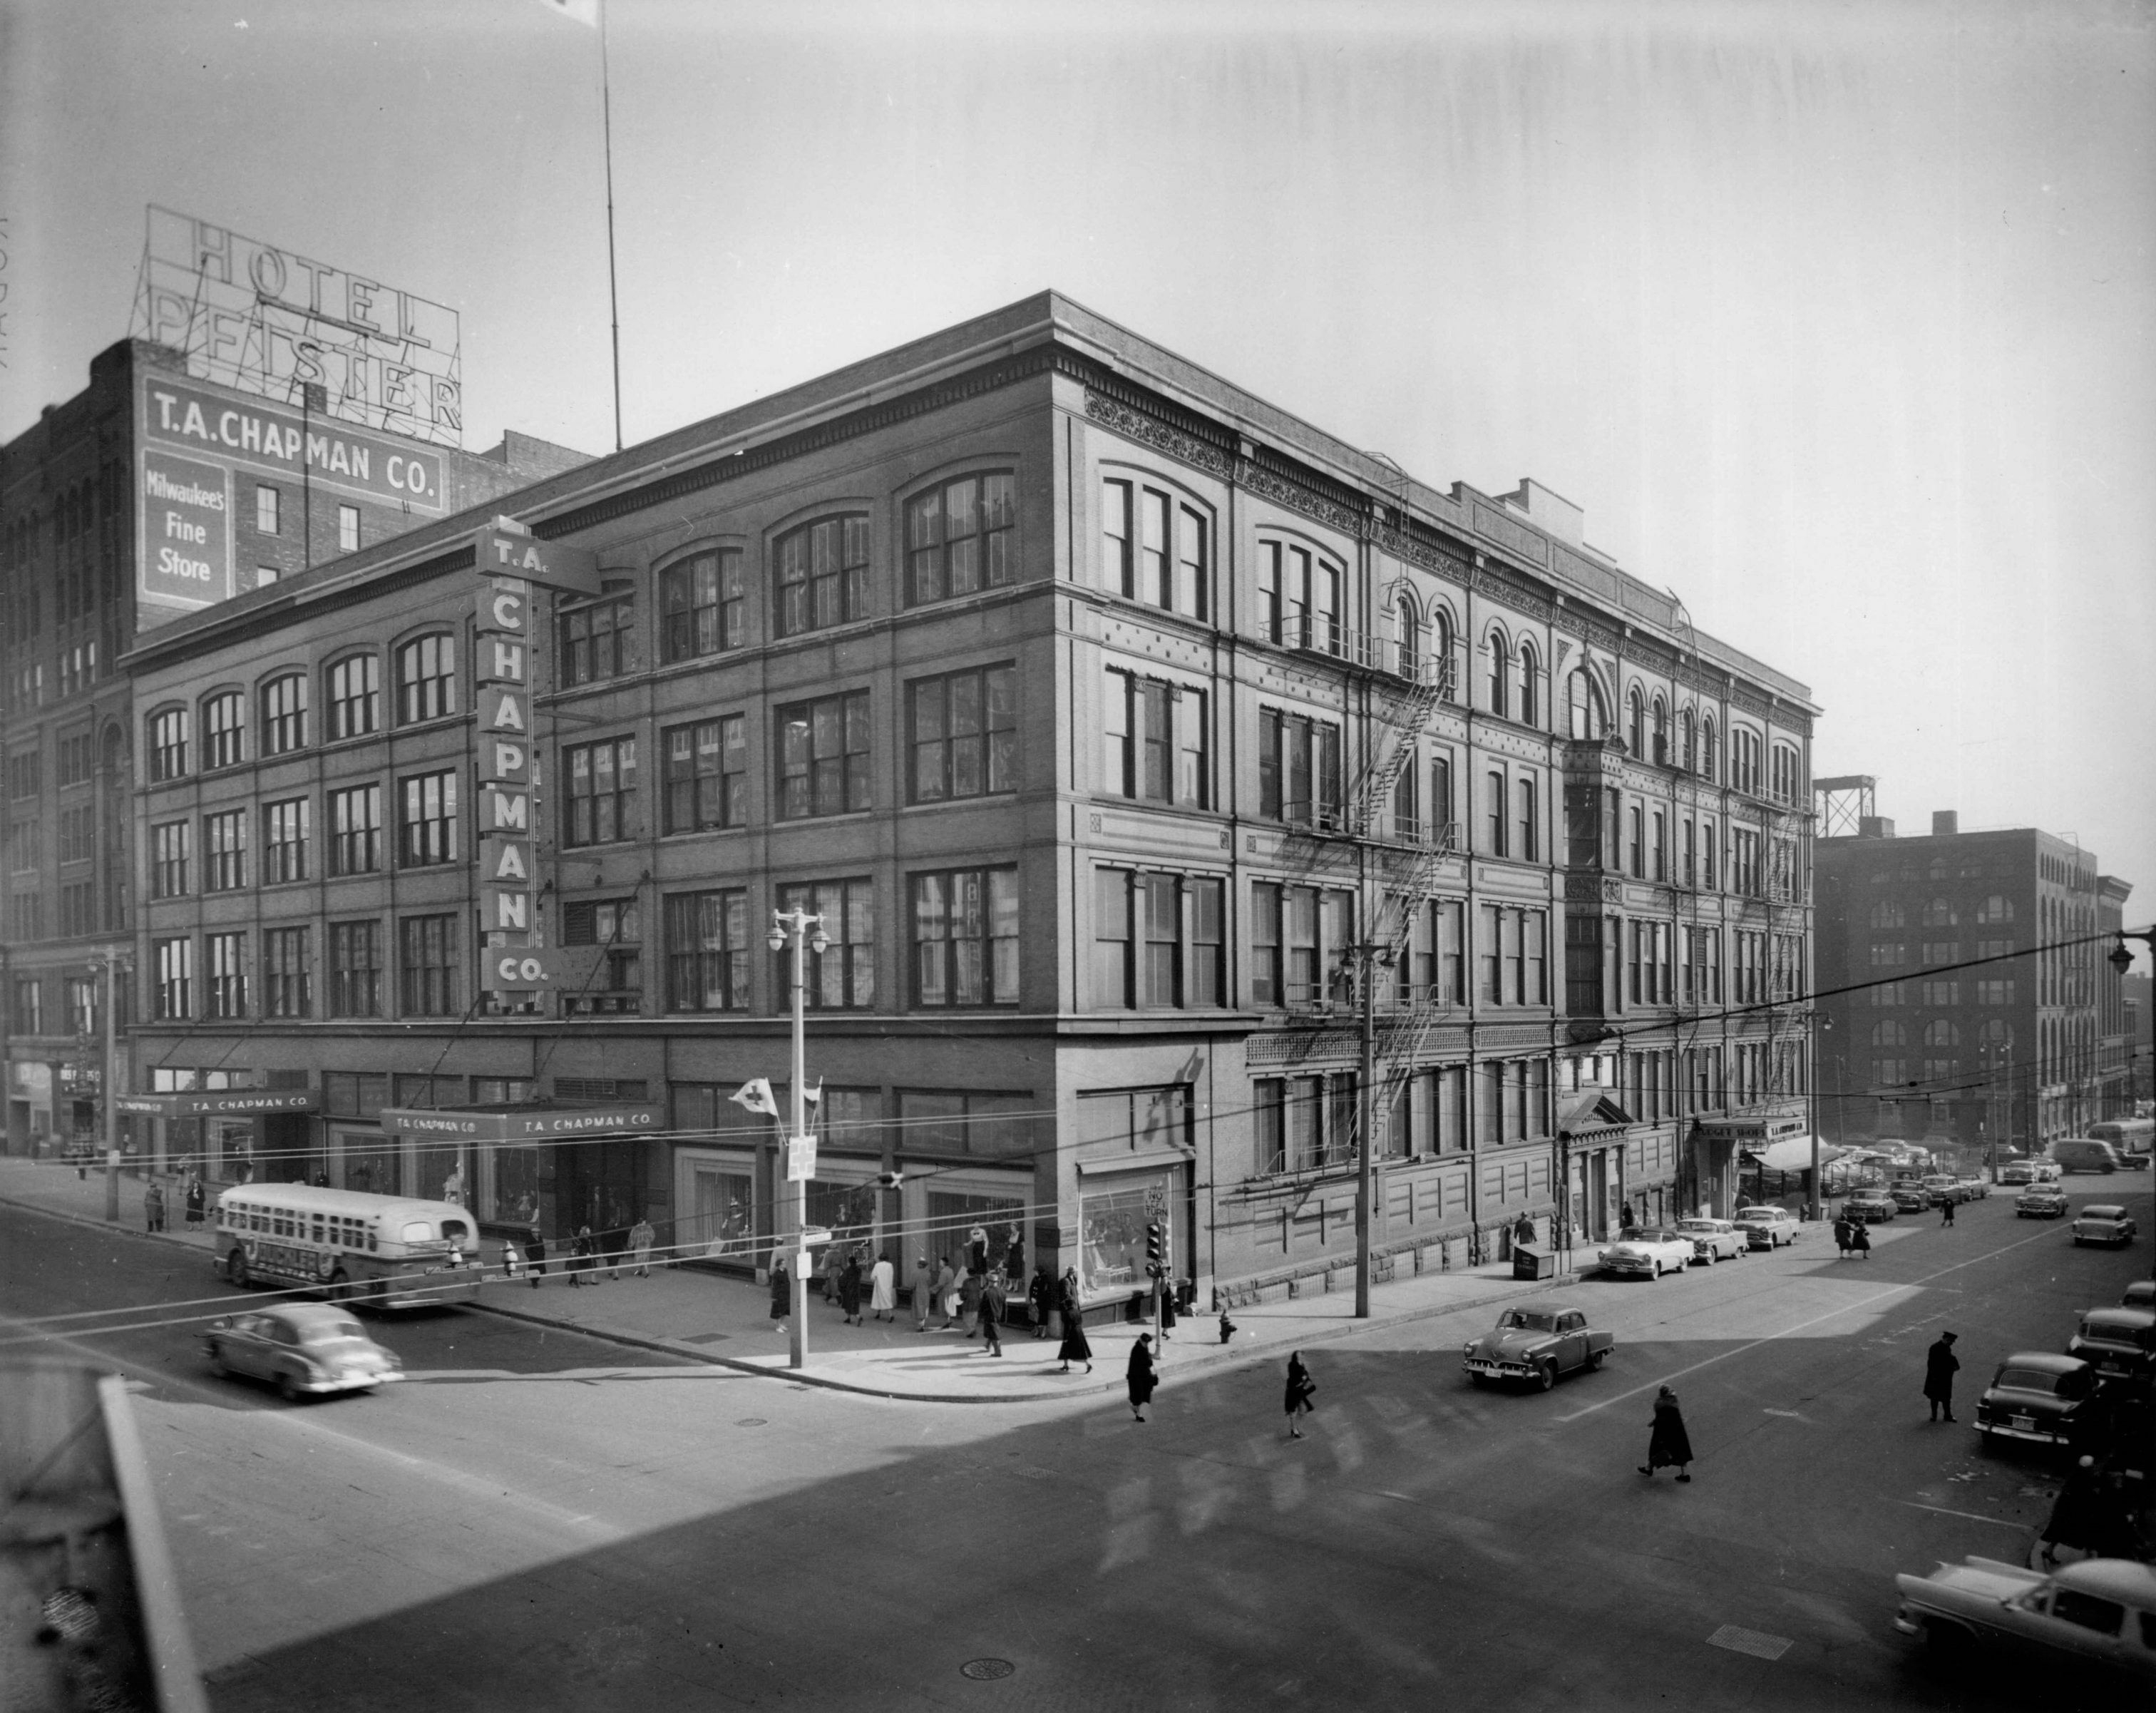 T.A. Chapman's department store, pictured here in 1955, was a prominent structure along Wisconsin Avenue from 1885 until it was torn down in 1982.